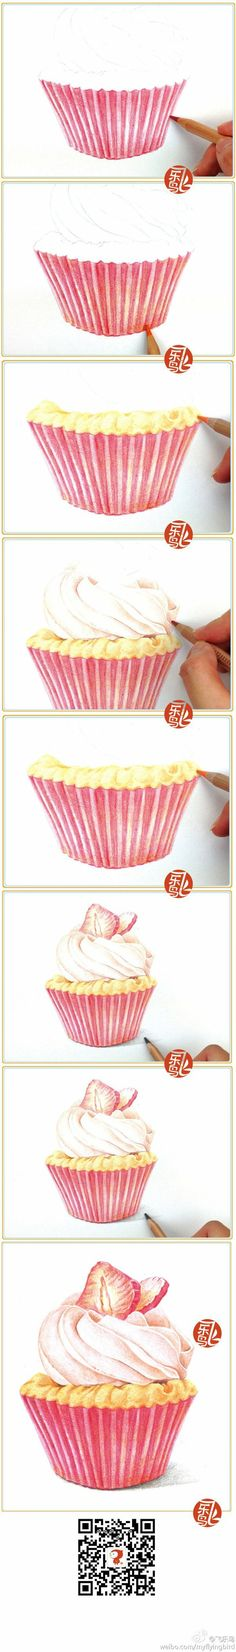 Drawing a cupcake in colored pencil. Colour Pencil Tutorial, Pencil Colour Art, Color Pencil Drawings, Cool Drawings, Pencil Drawing Tutorials, Colorful Drawings, Art Tutorials, Art Techniques, Color Pencil Techniques